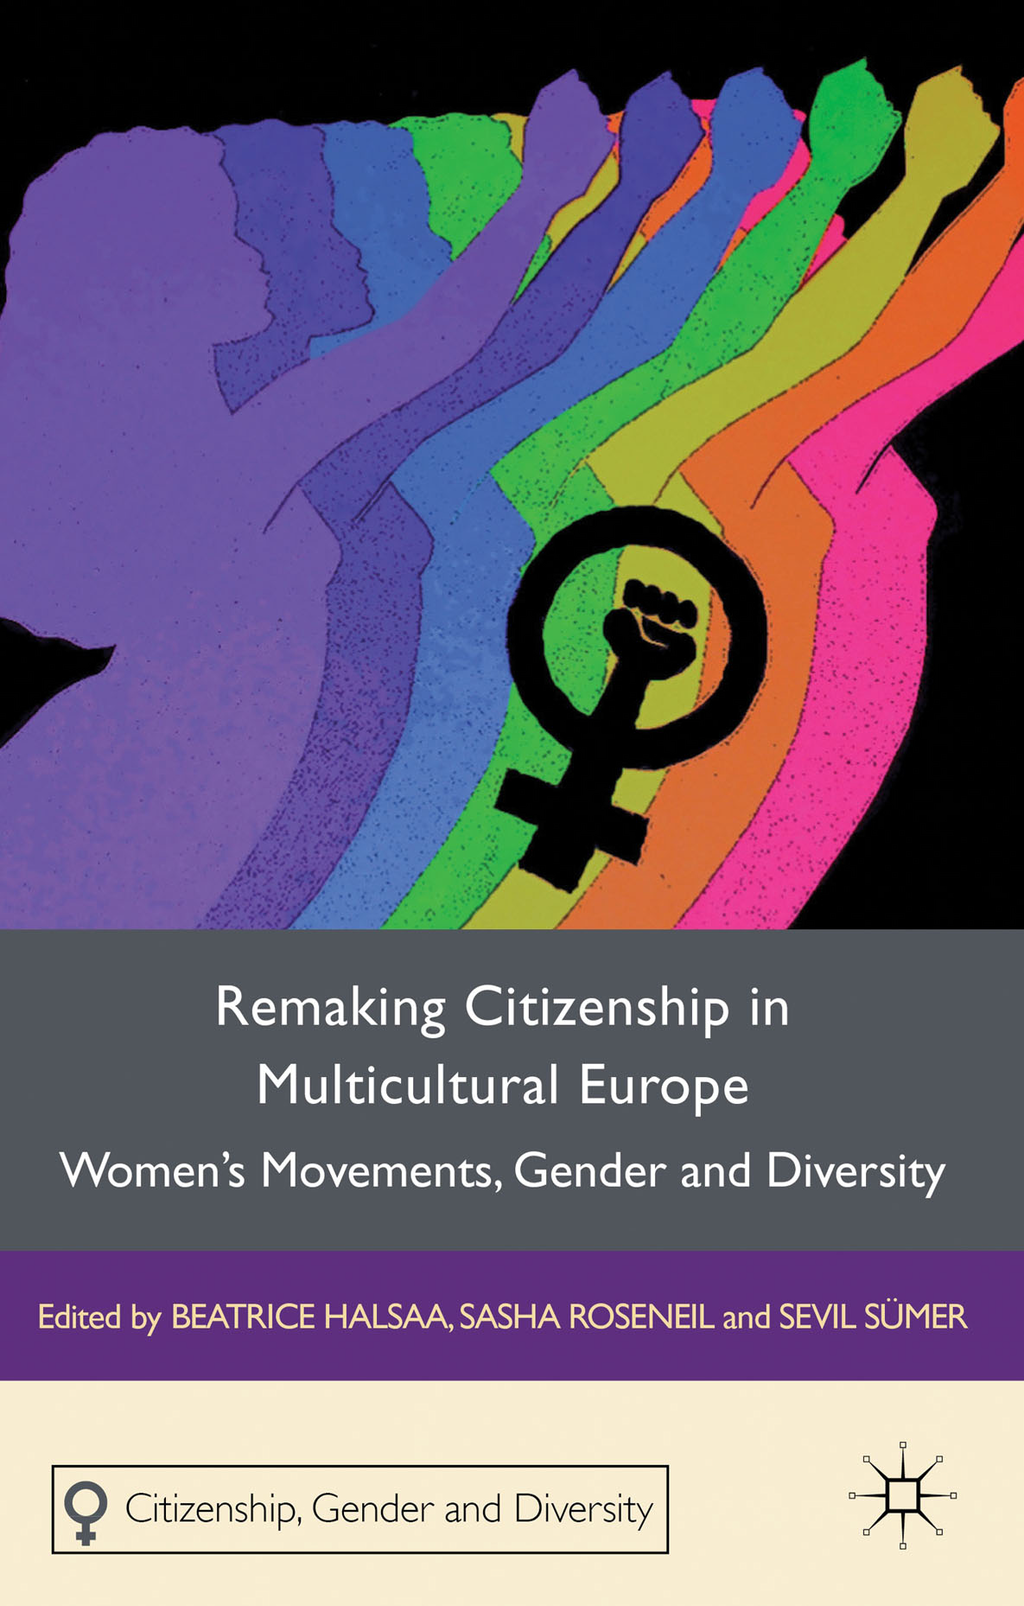 Remaking Citizenship in Multicultural Europe Women's Movements,  Gender and Diversity